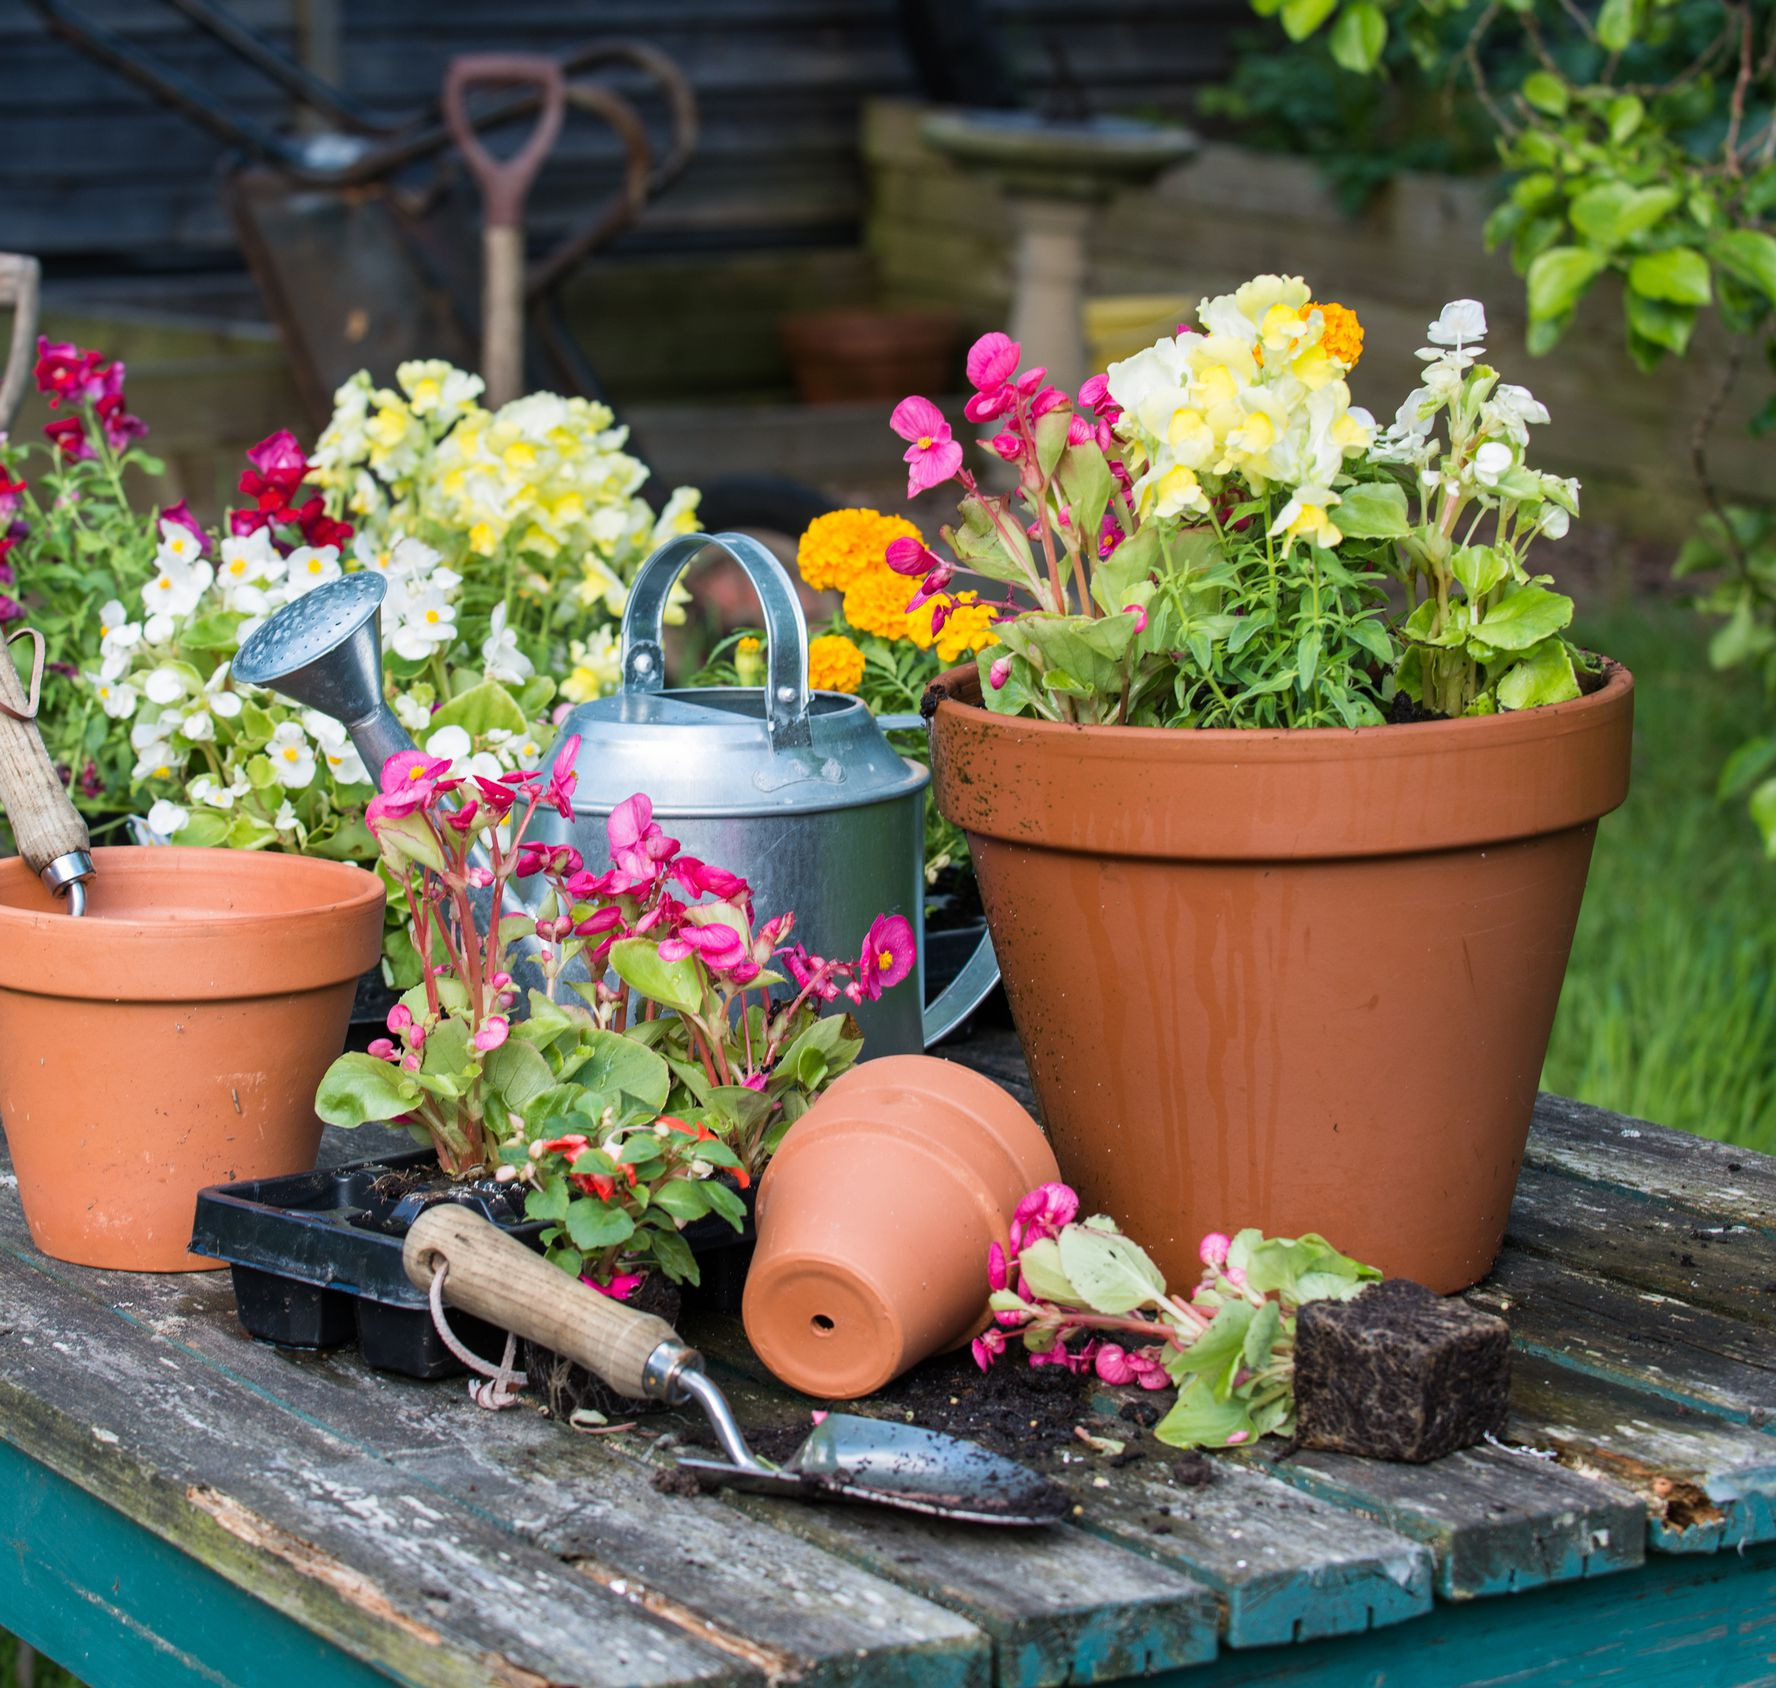 large outdoor vases wholesale of how to avoid drowning the plants in your container garden in pottedflowers gettyimages 171589906 59af7360aad52b001053063d